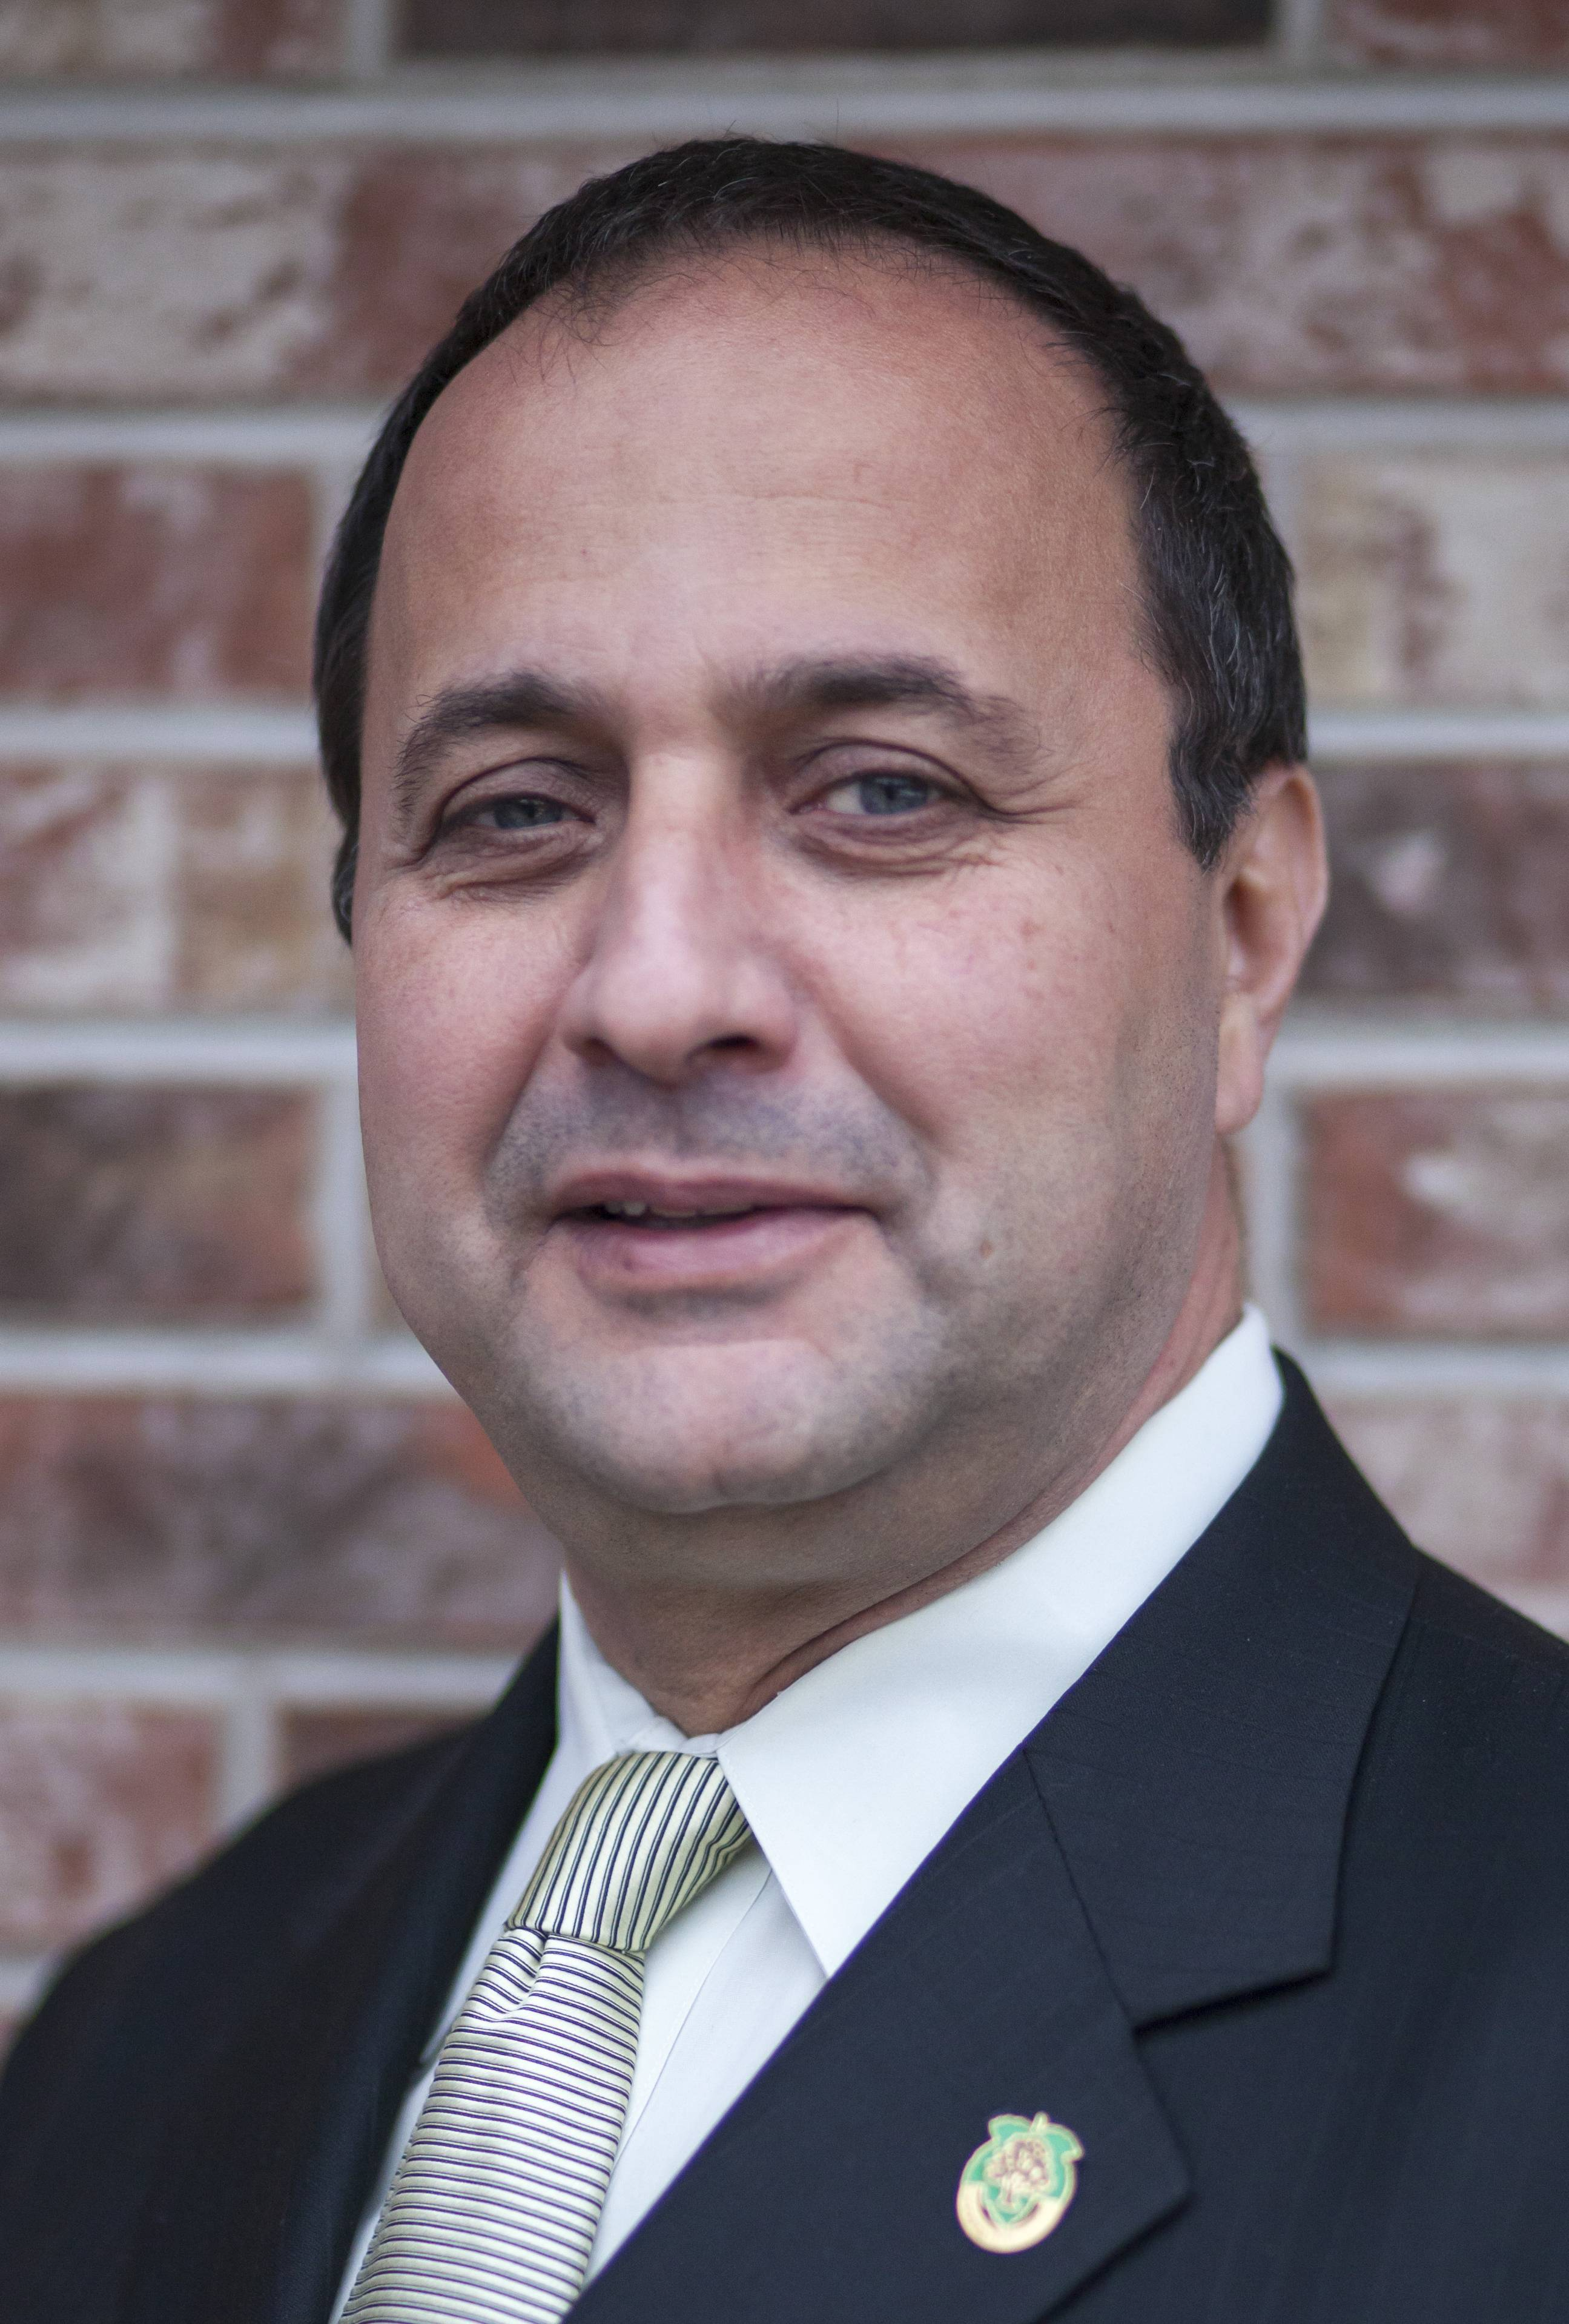 Endorsement: Nunzio Pulice for Wood Dale mayor